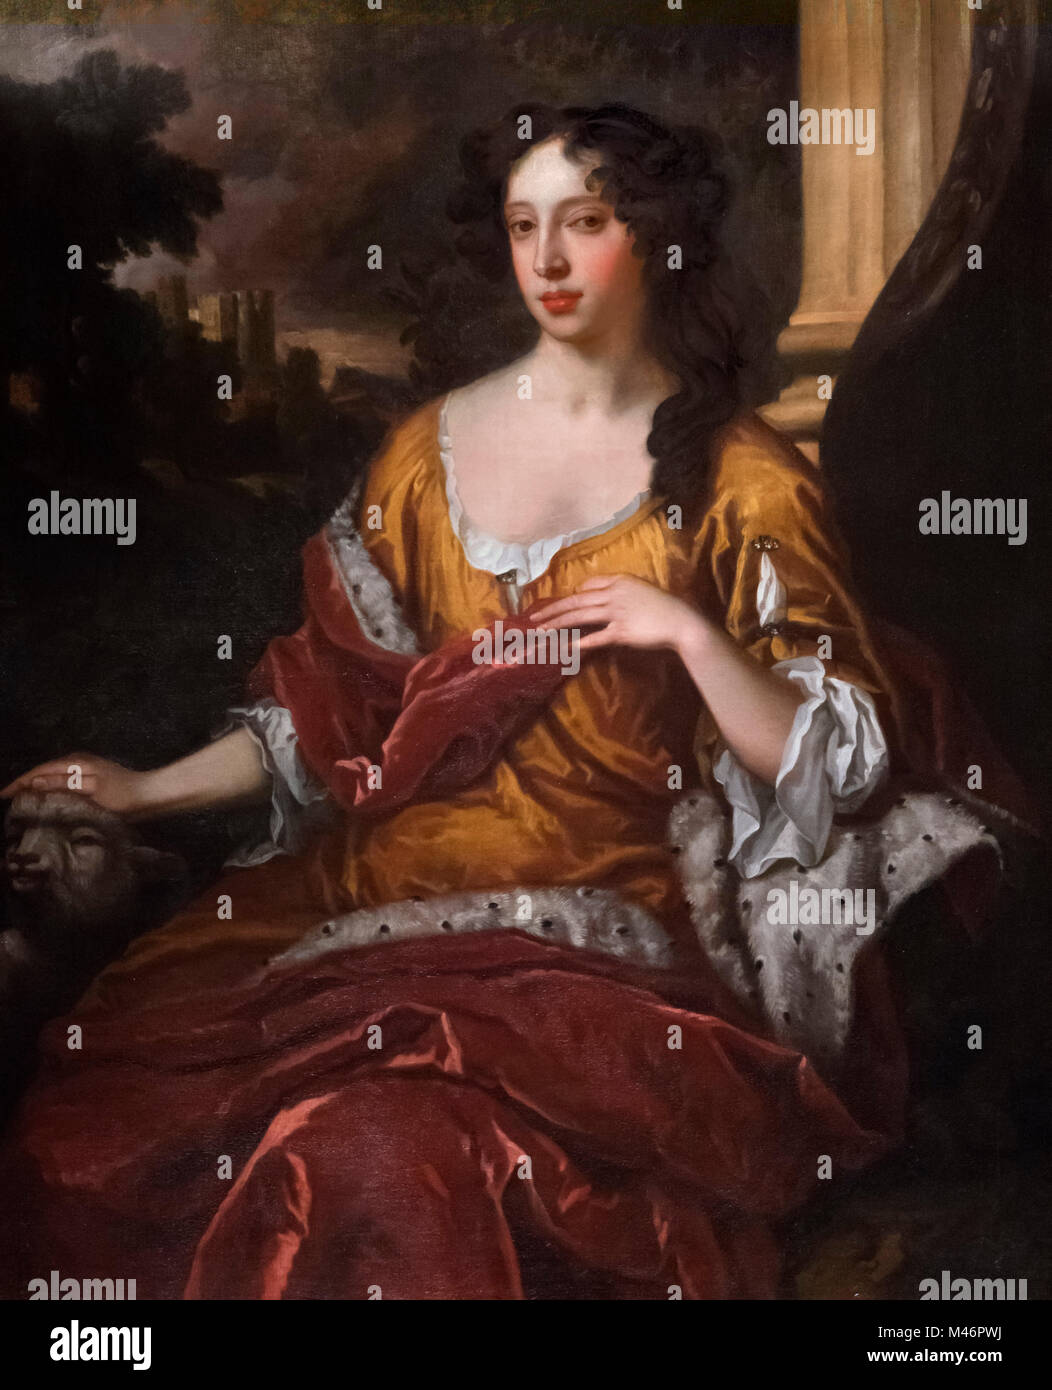 Mary of Modena as Duchess of York (Maria Beatrice Anna Margherita Isabella d'Este; 1658-1718), Queen consort - Stock Image